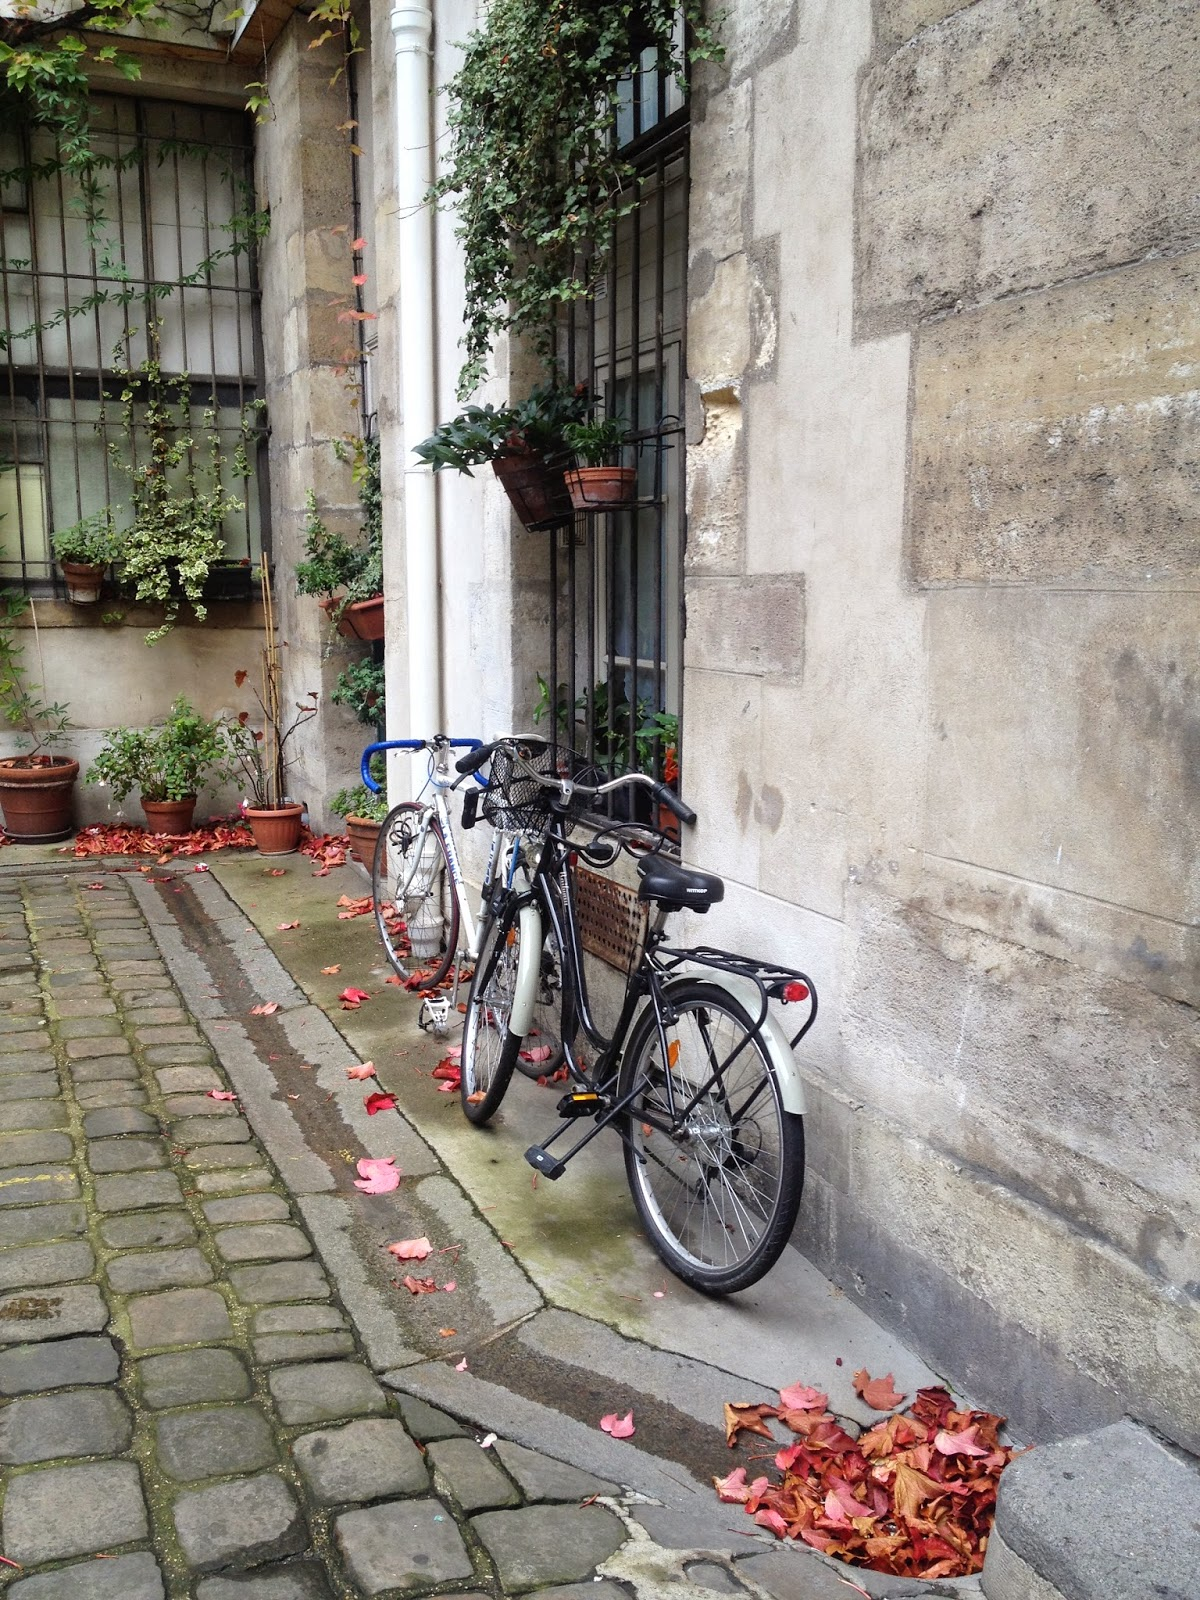 Bicycles and leaves in Le Marais